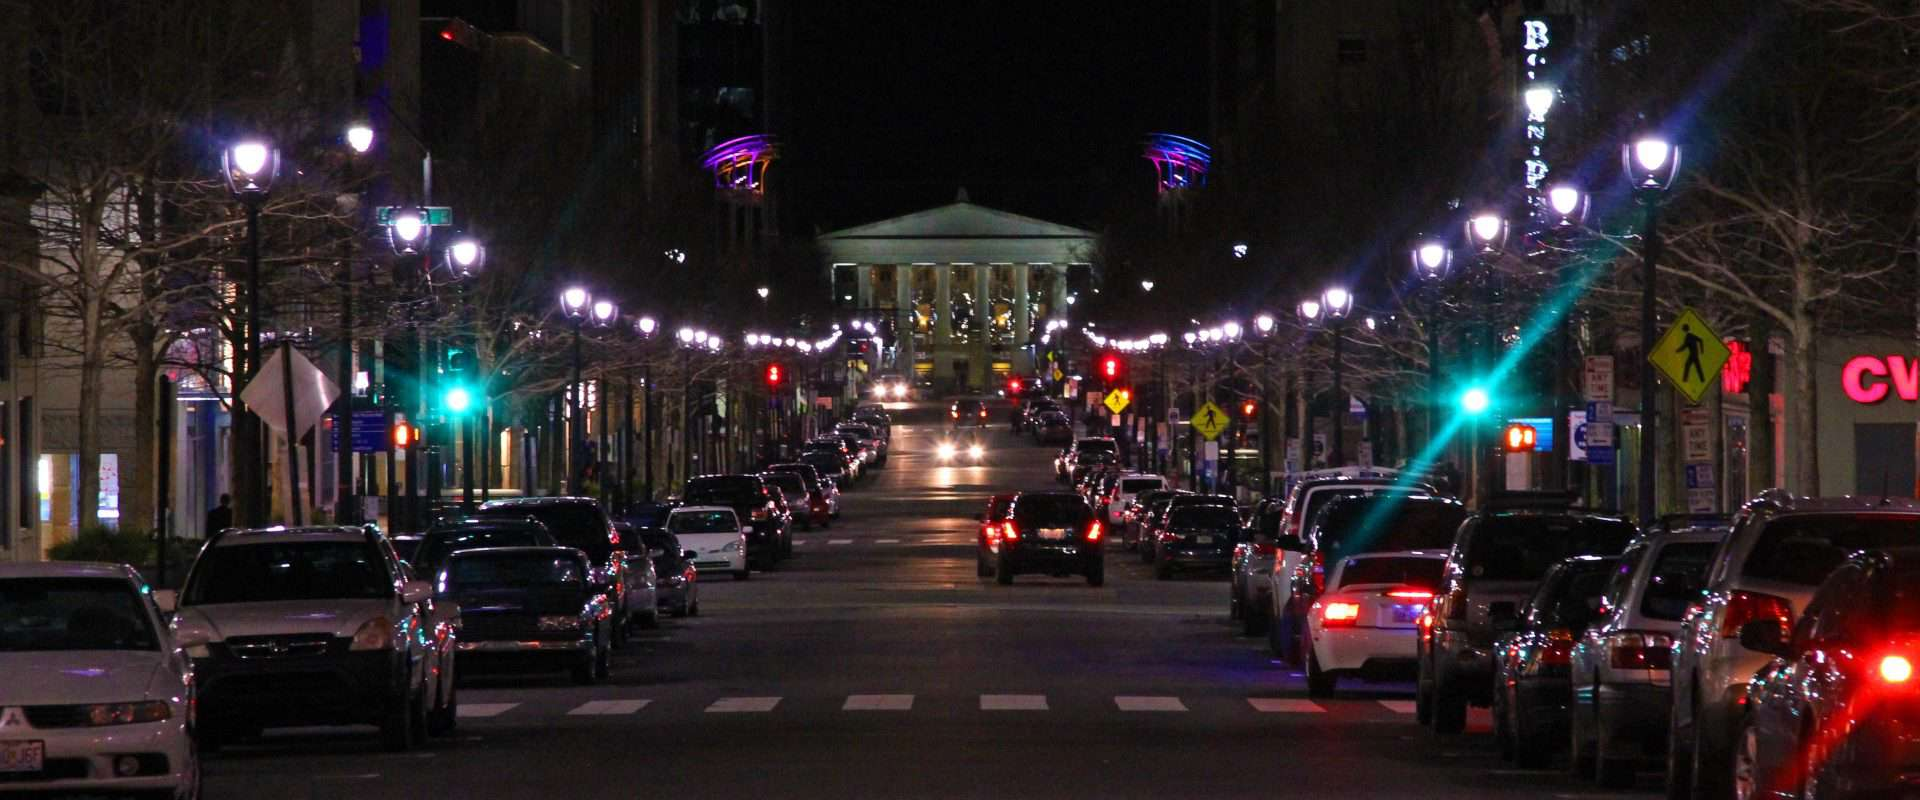 Fayetteville Street at night.